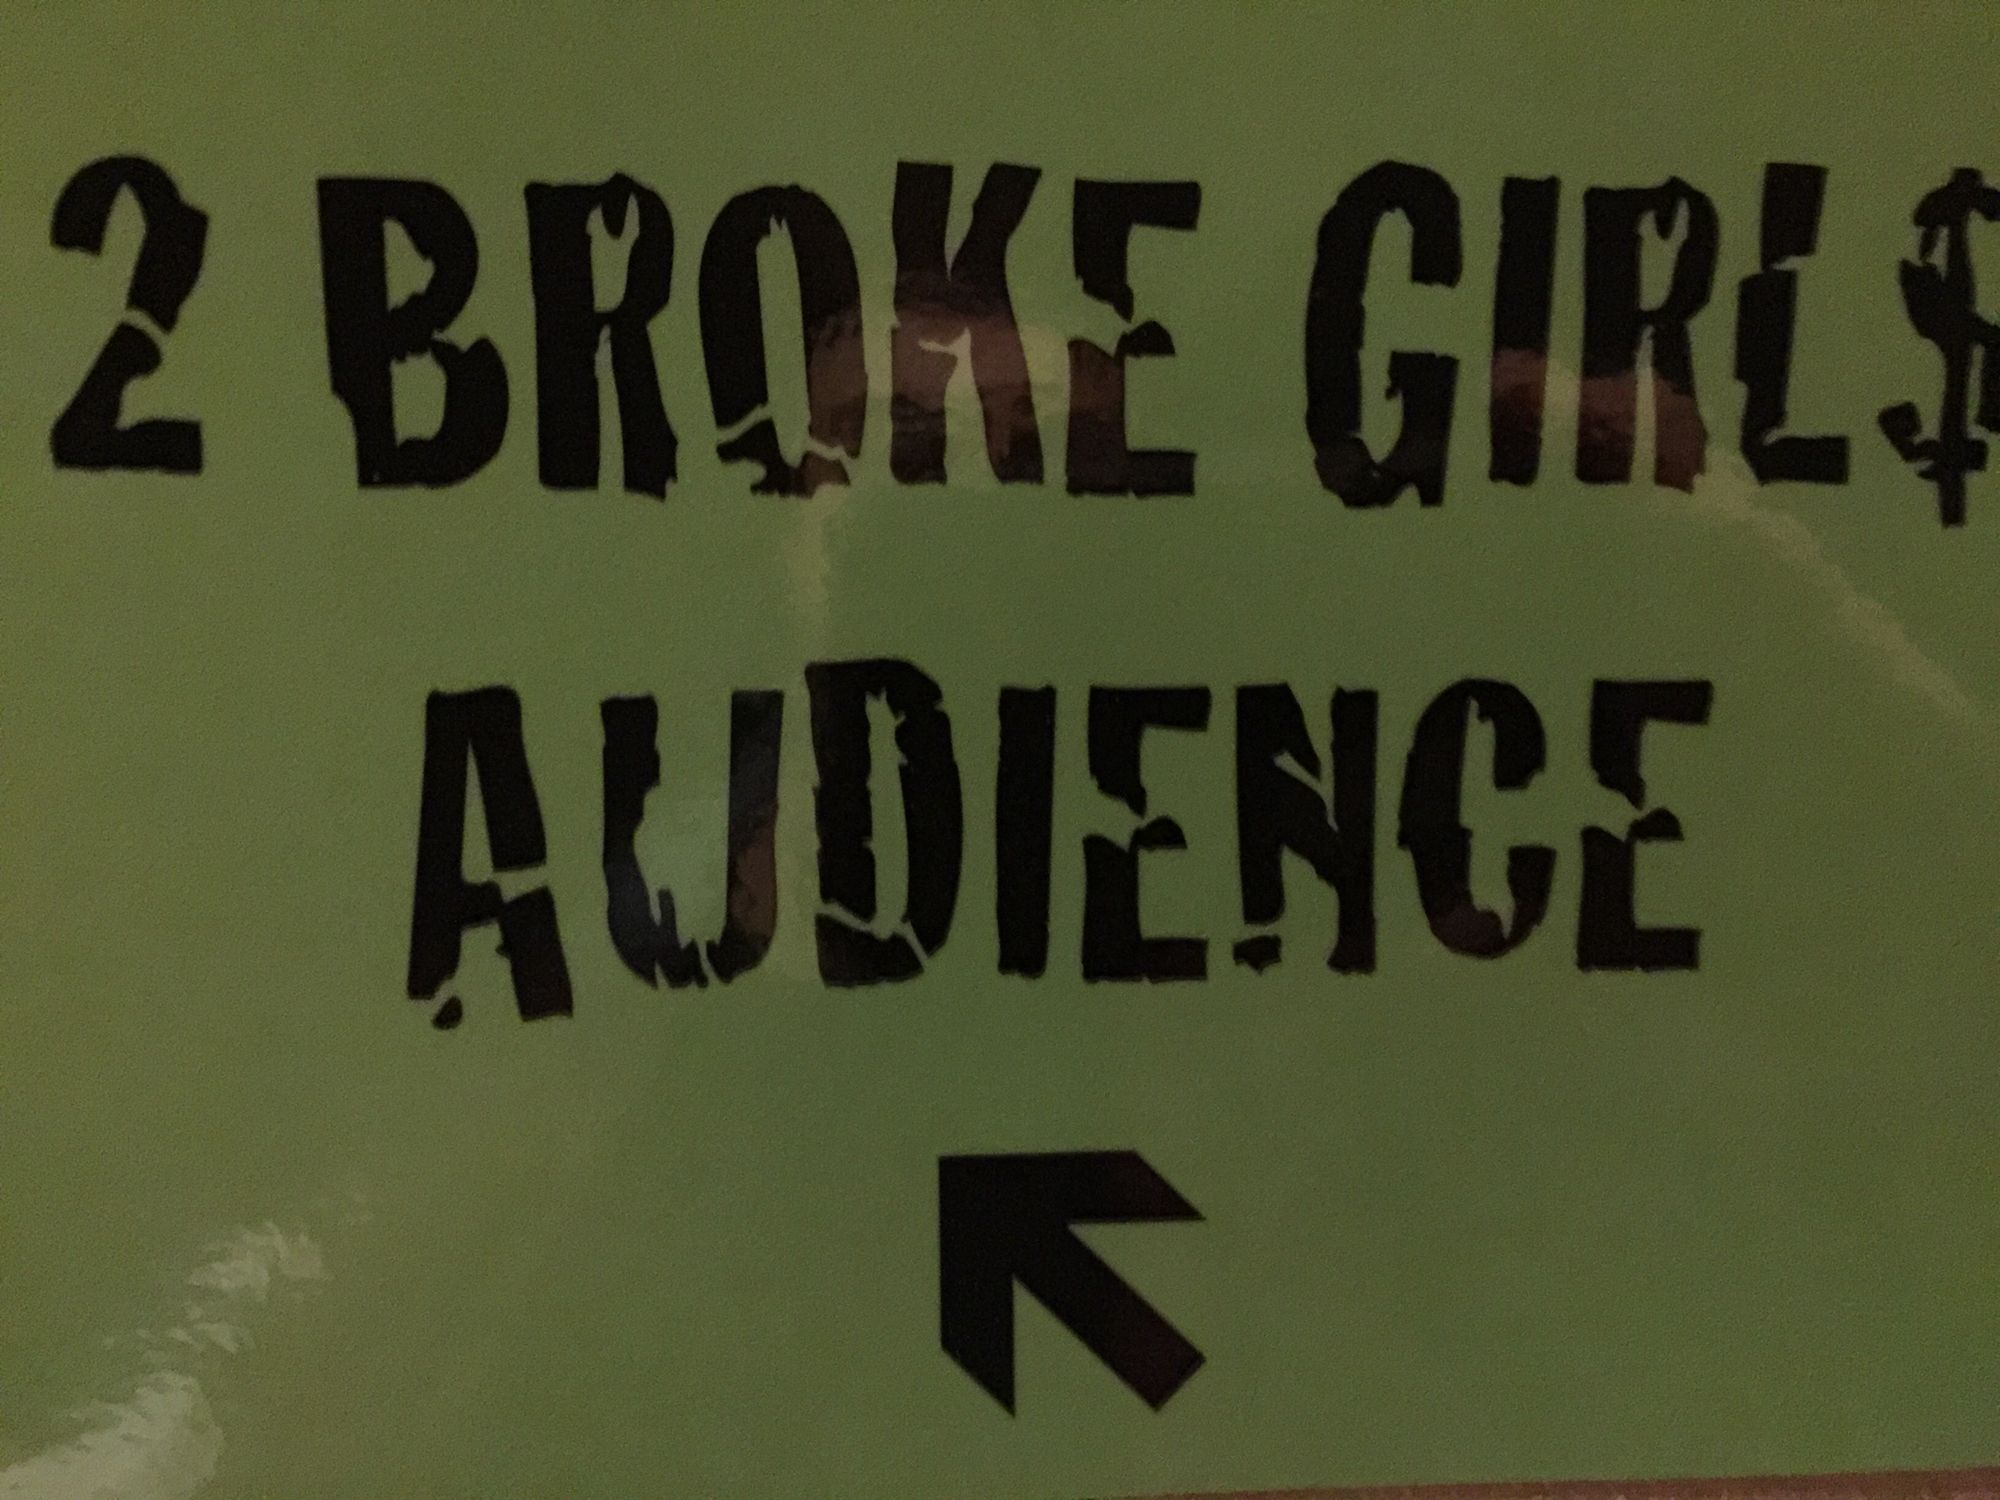 2 Broke Girls Audience sign on stage.